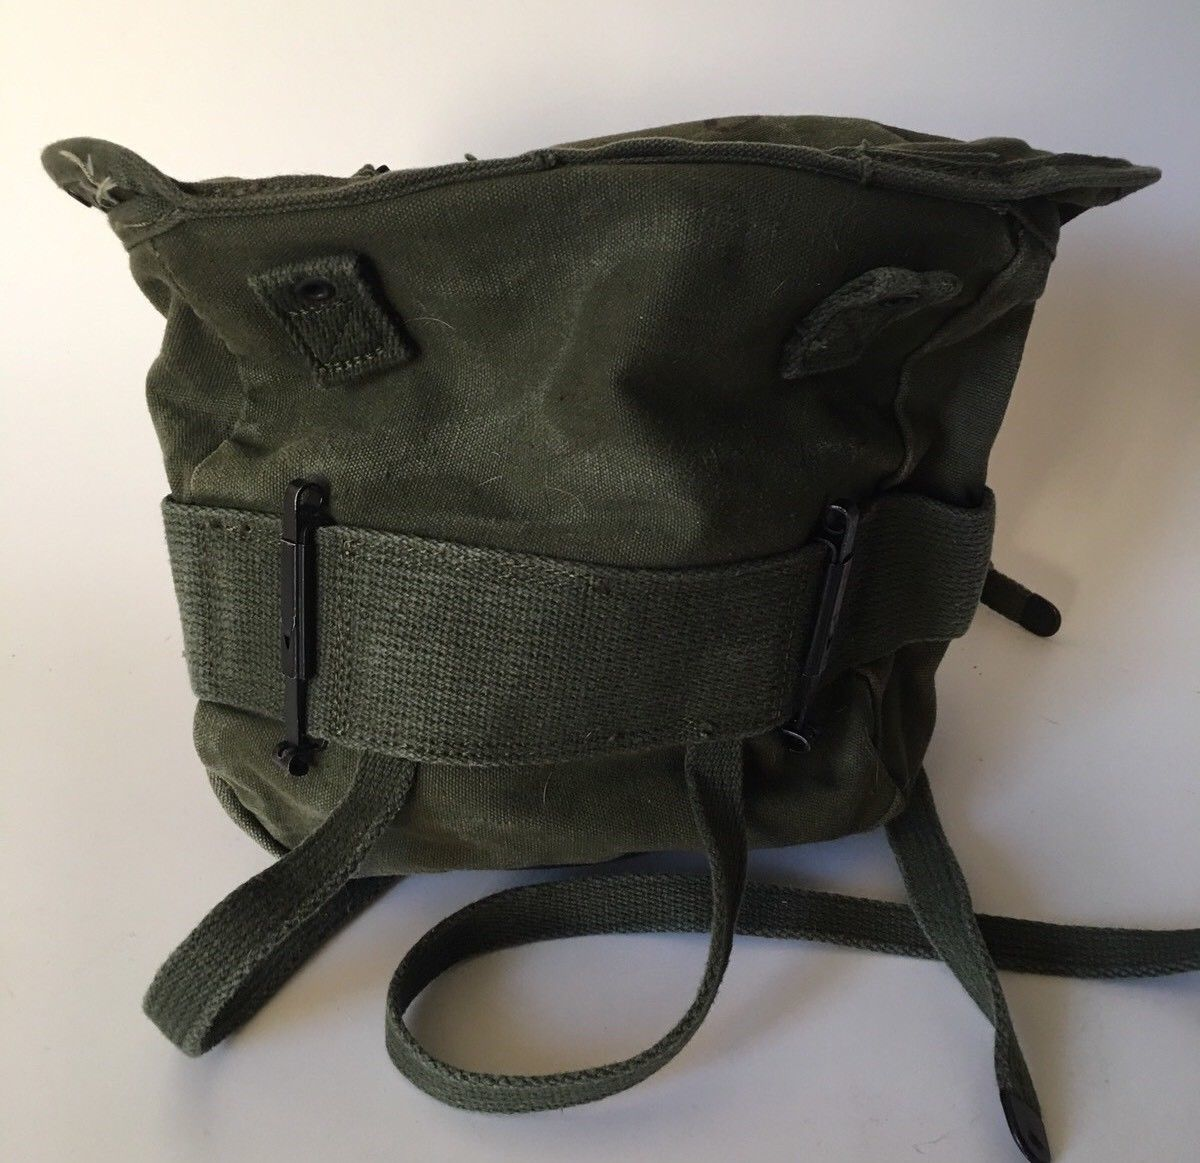 8d274b5447 Vintage Field Pack Canvas Bag US Army Military Olive Green Backpack